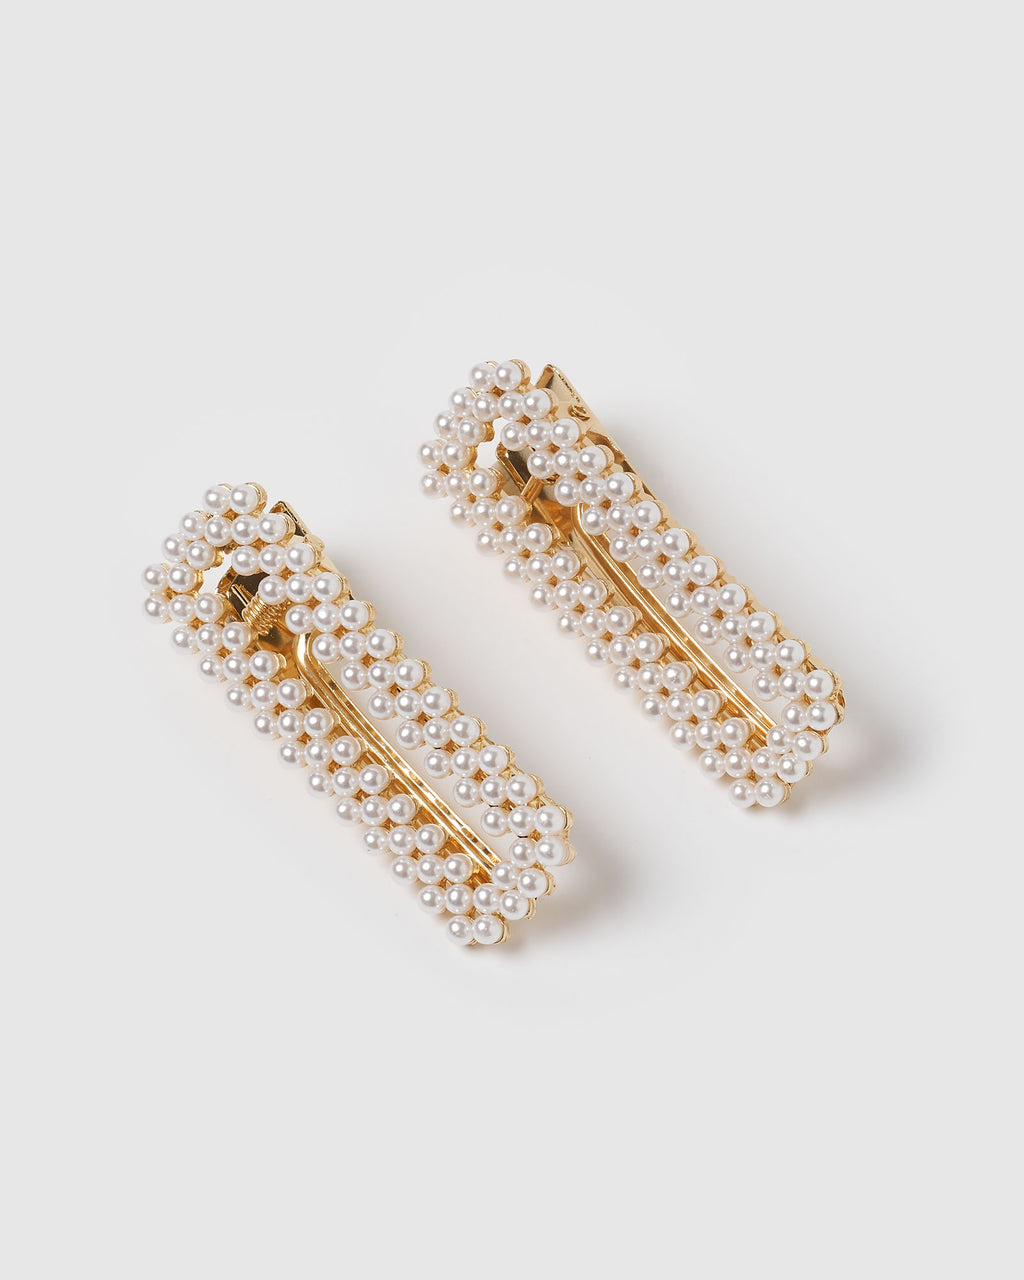 Izoa Carrie Hair Clip Set Gold Pearl